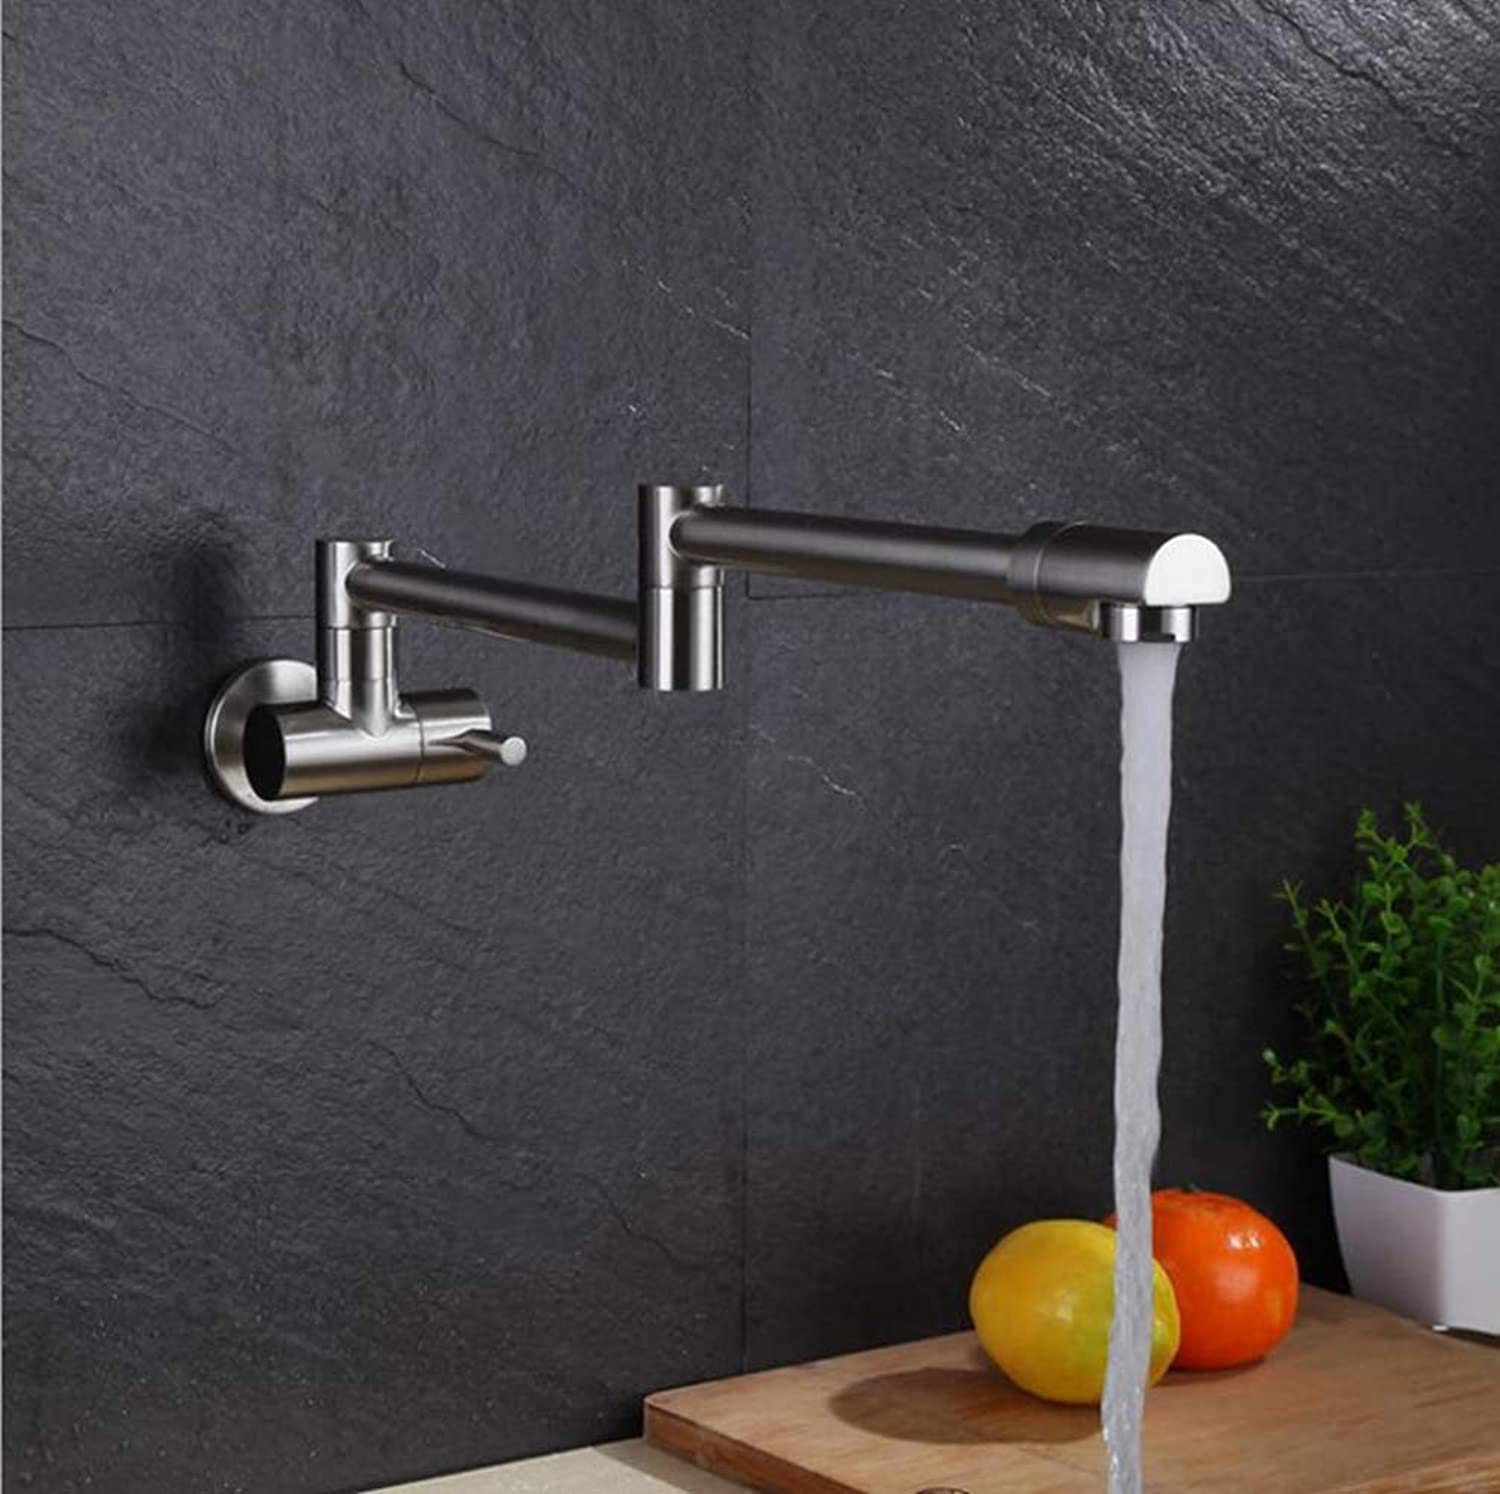 FZHLR 360 Degree Brass Foldable Wall Mounted Chrome∕Nickel∕Black Single Lever Kitchen Faucet Sink Basin Faucet Tap Mixer,C